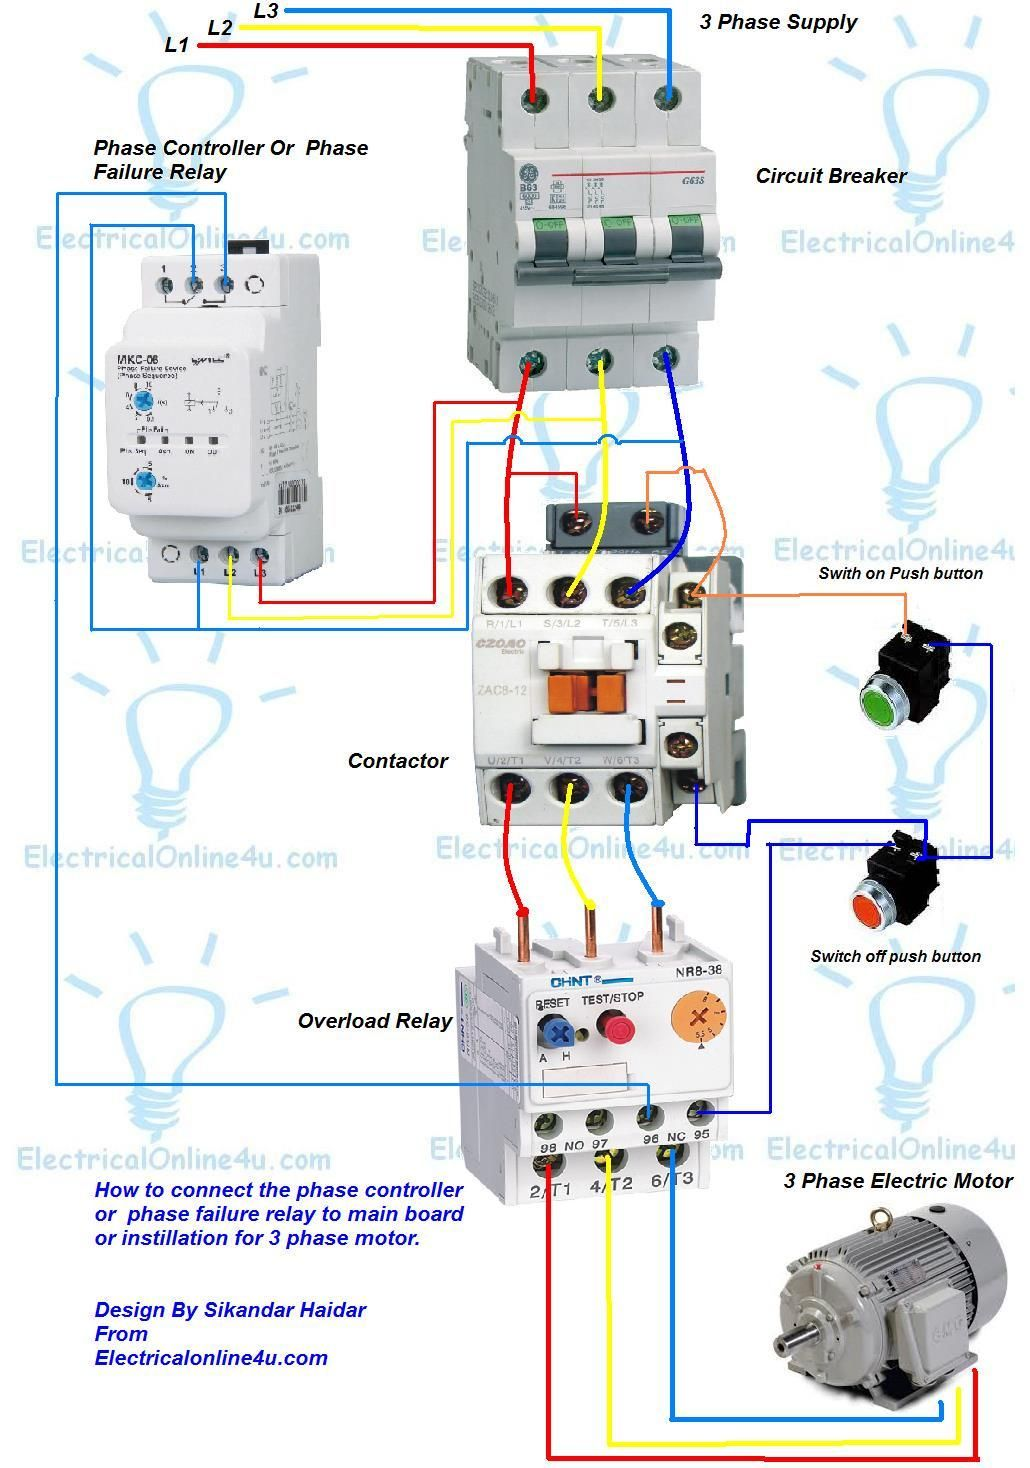 Phase Controller Wiring / Phase Failure Relay Diagram Electrical  Engineering, Electrical Projects, Electrical Wiring